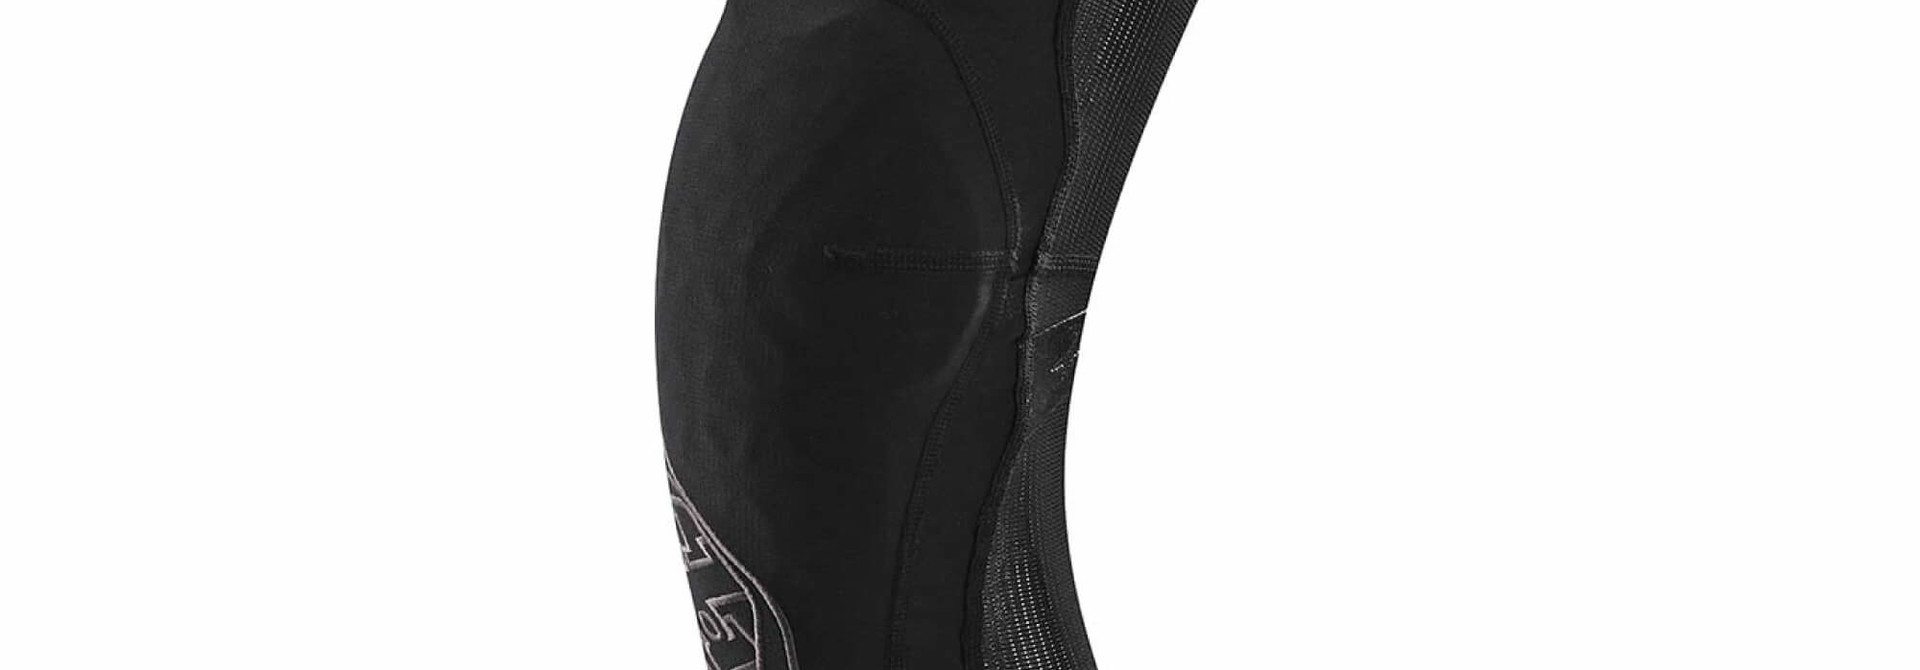 Stage Knee Guard